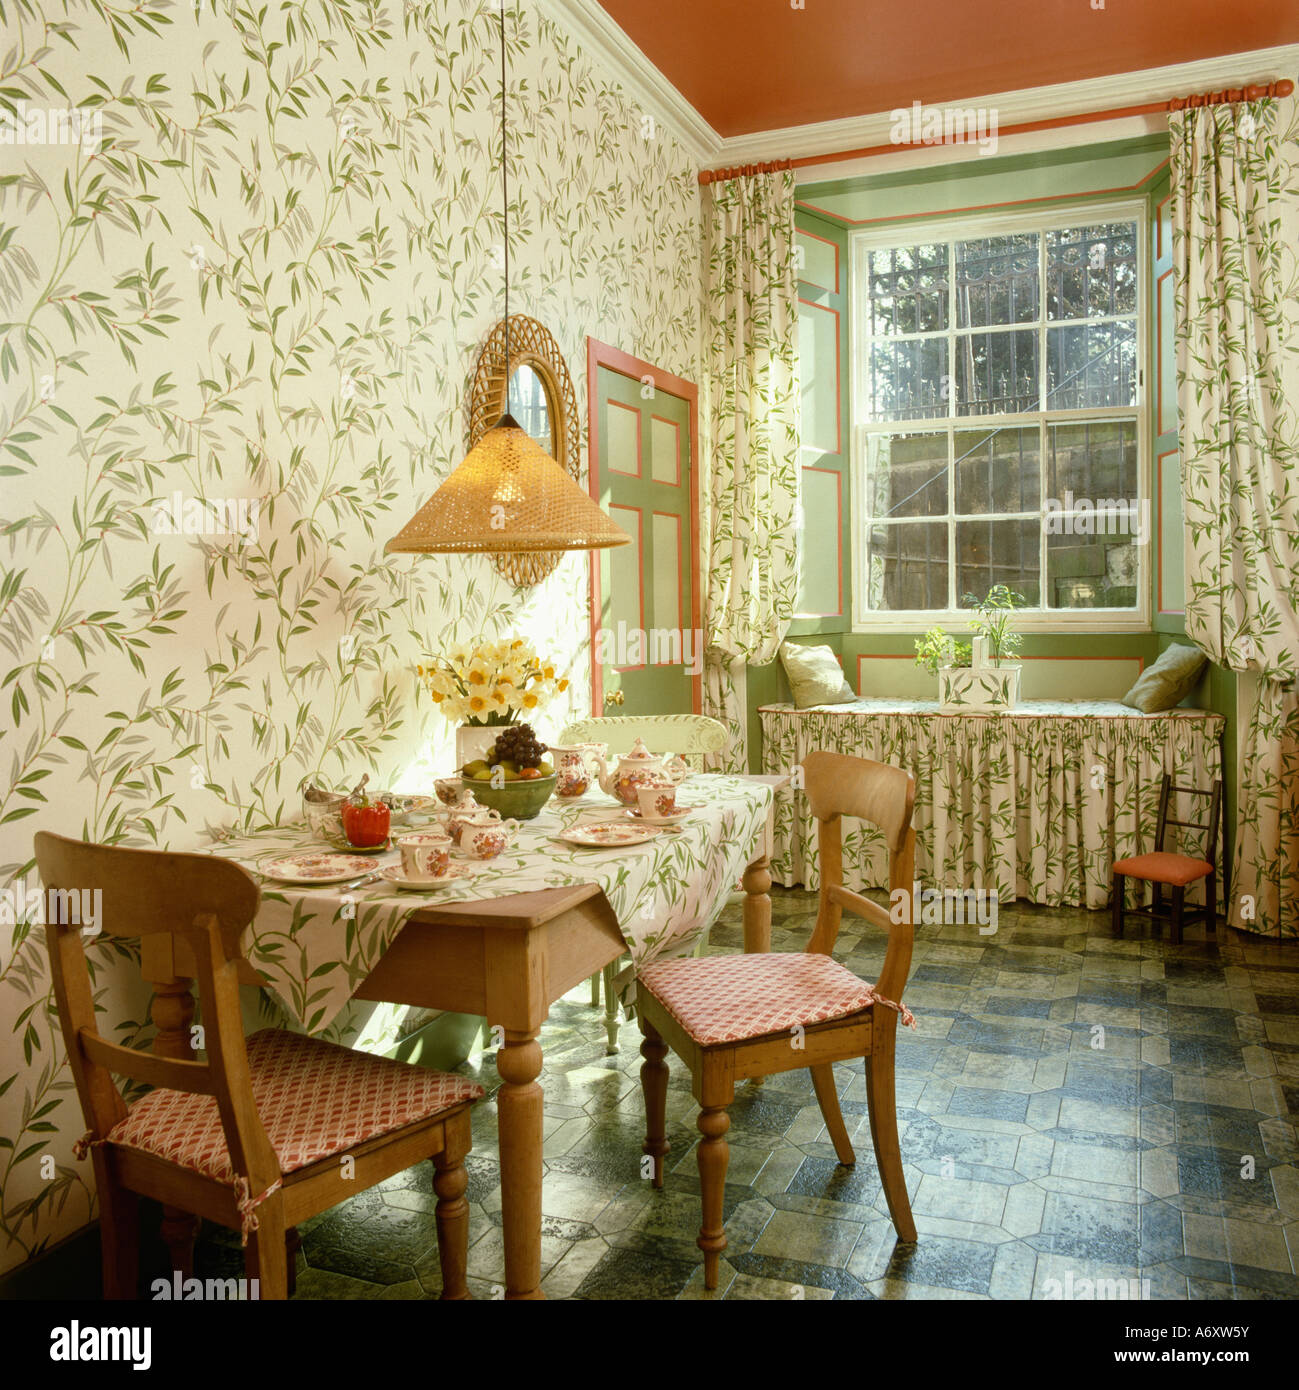 White And Green Floral Wallpaper And Matching Drapes In Small Dining Stock Photo Alamy